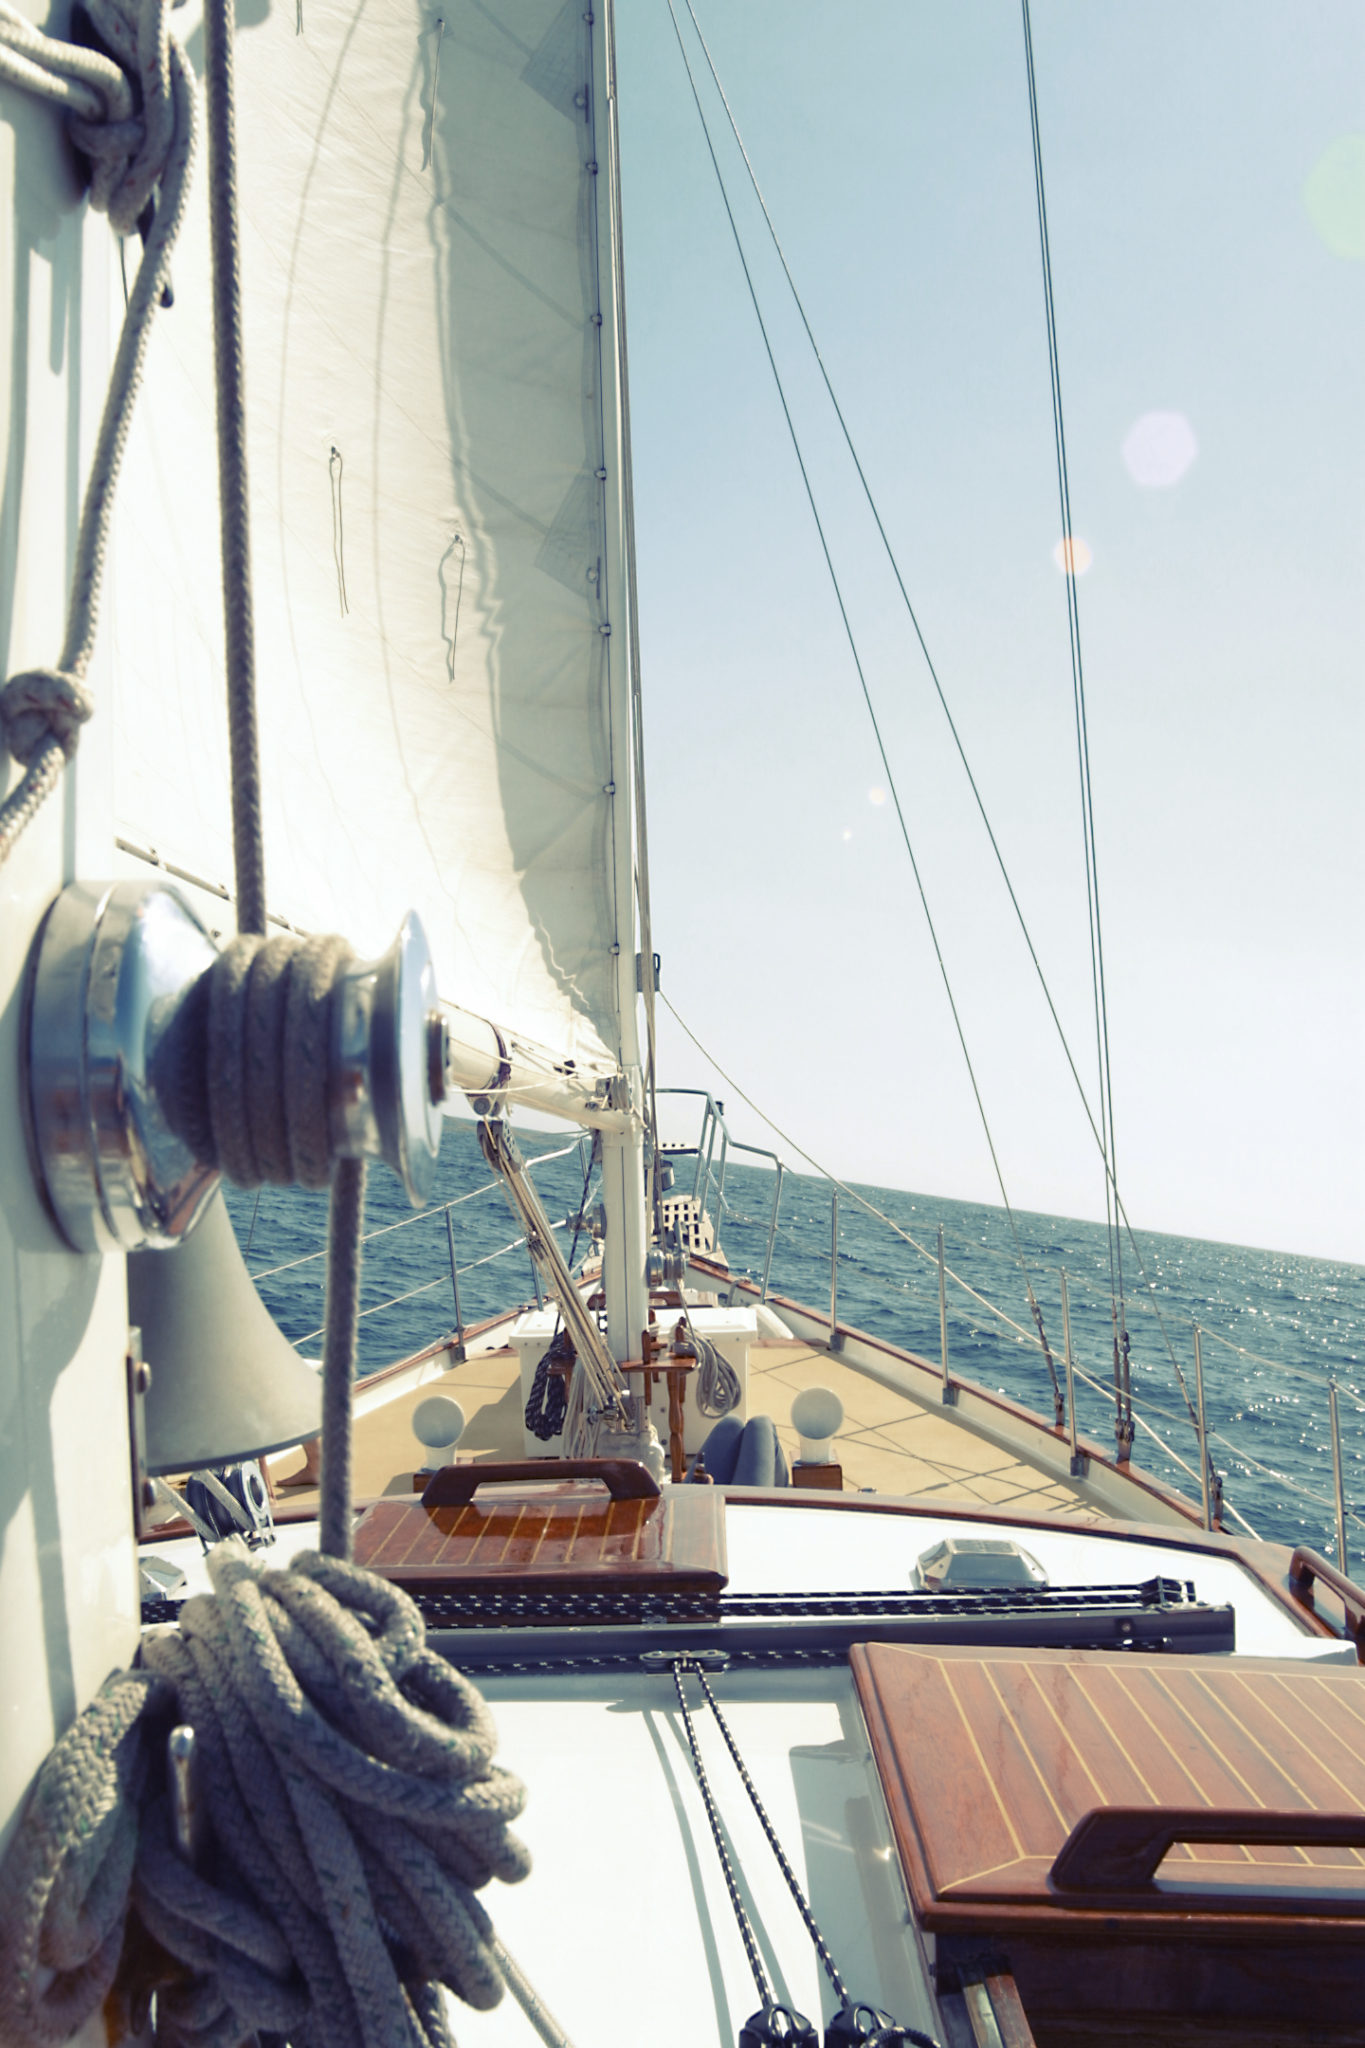 Sailboat view by Leeroy from stocksnap.io